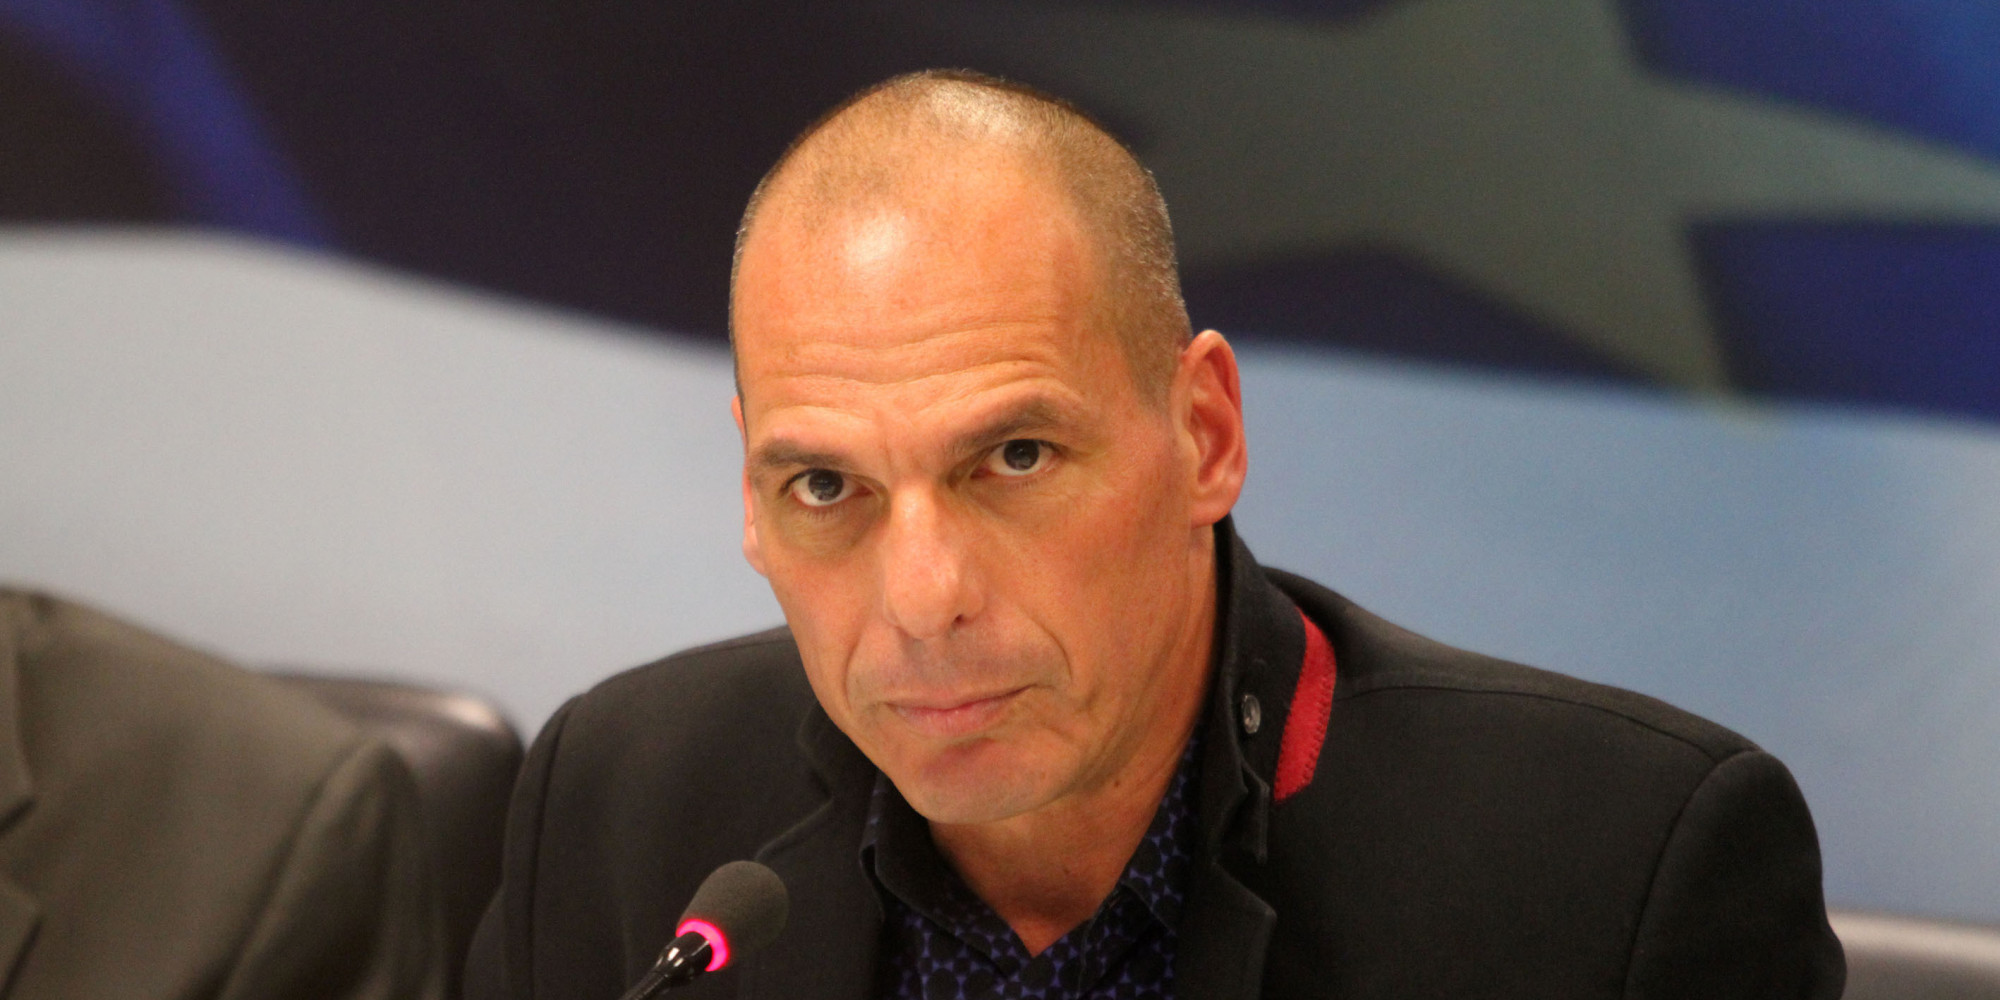 Varoufakis: On June 12 the EU conspired against Tsipras